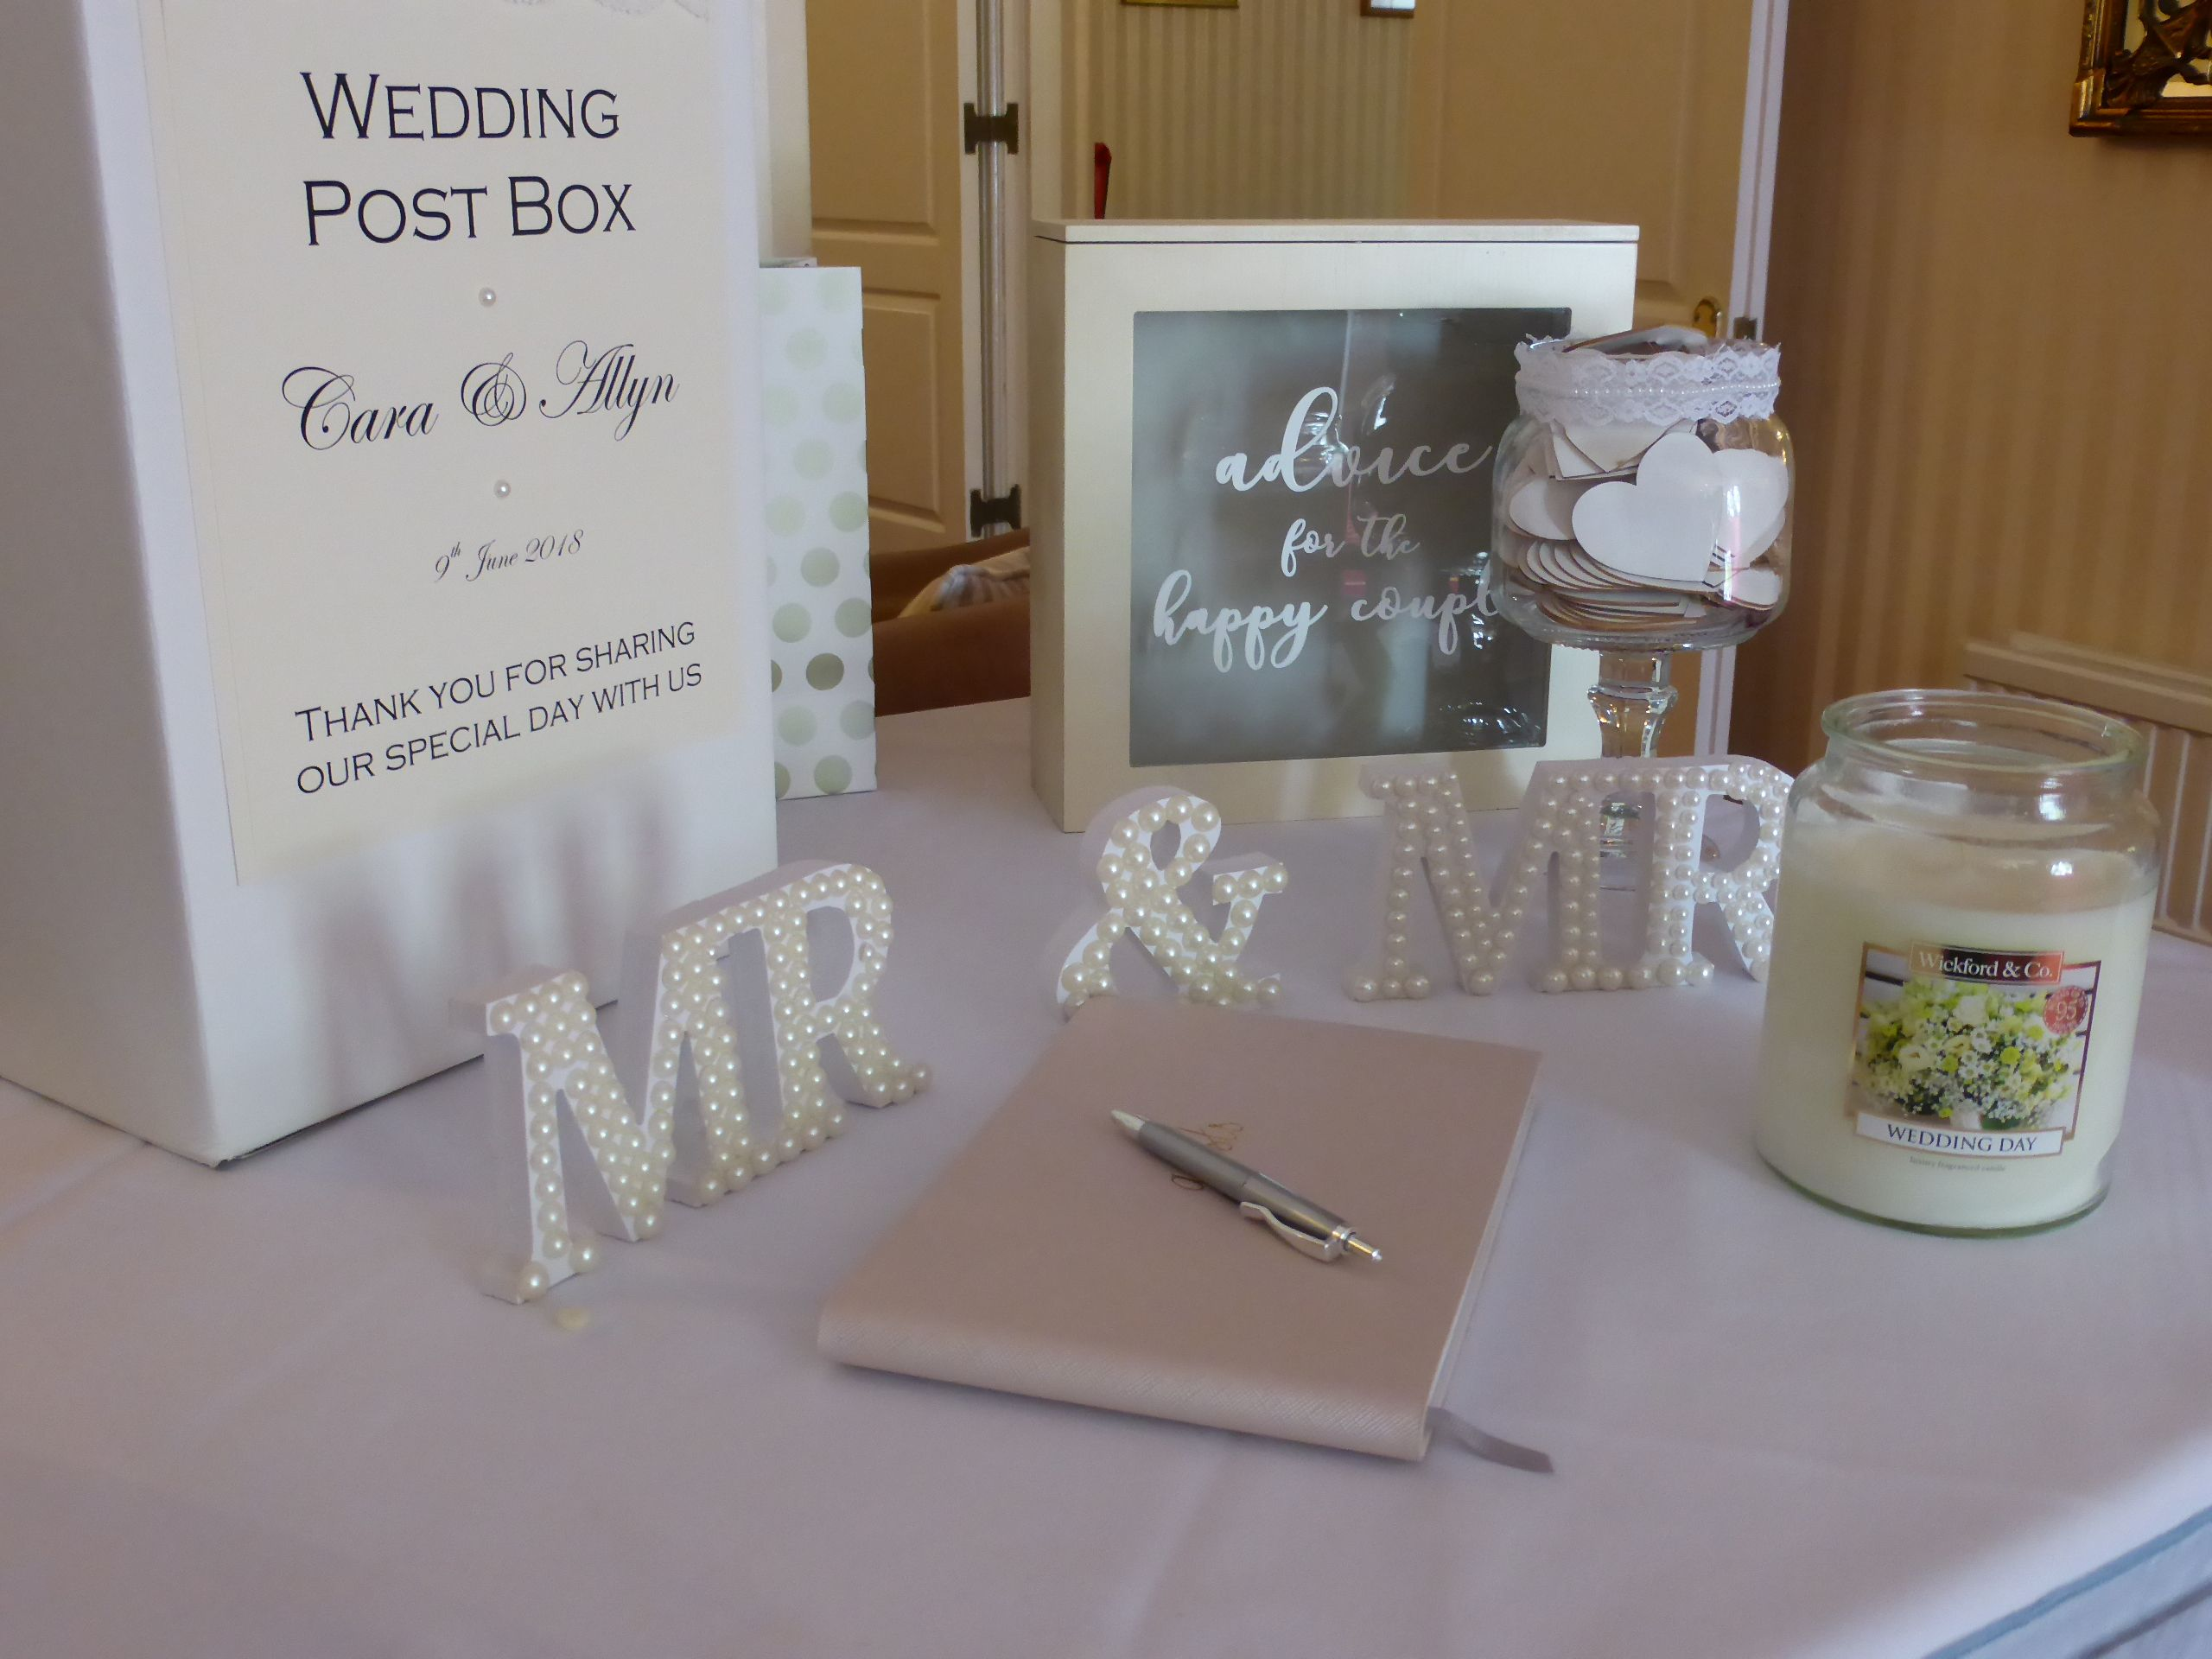 Wedding Post Box Guest Book And Gift Table Wedding Post Box